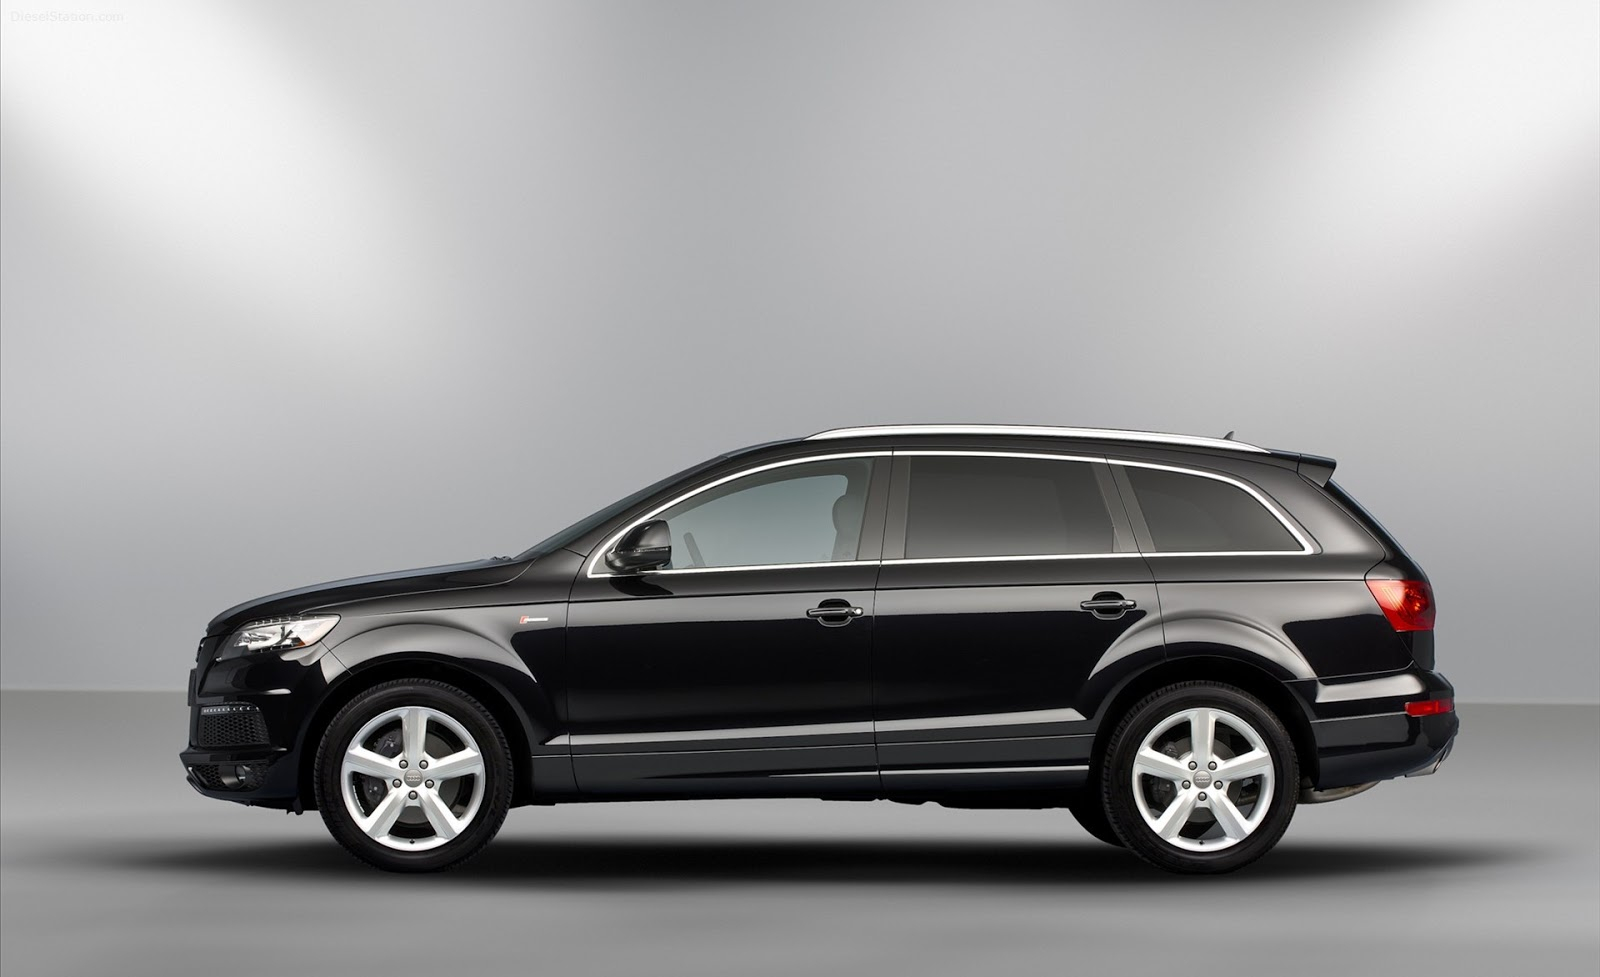 2013 audi q7 hd desktop wallpapers desktop wallpaper. Black Bedroom Furniture Sets. Home Design Ideas